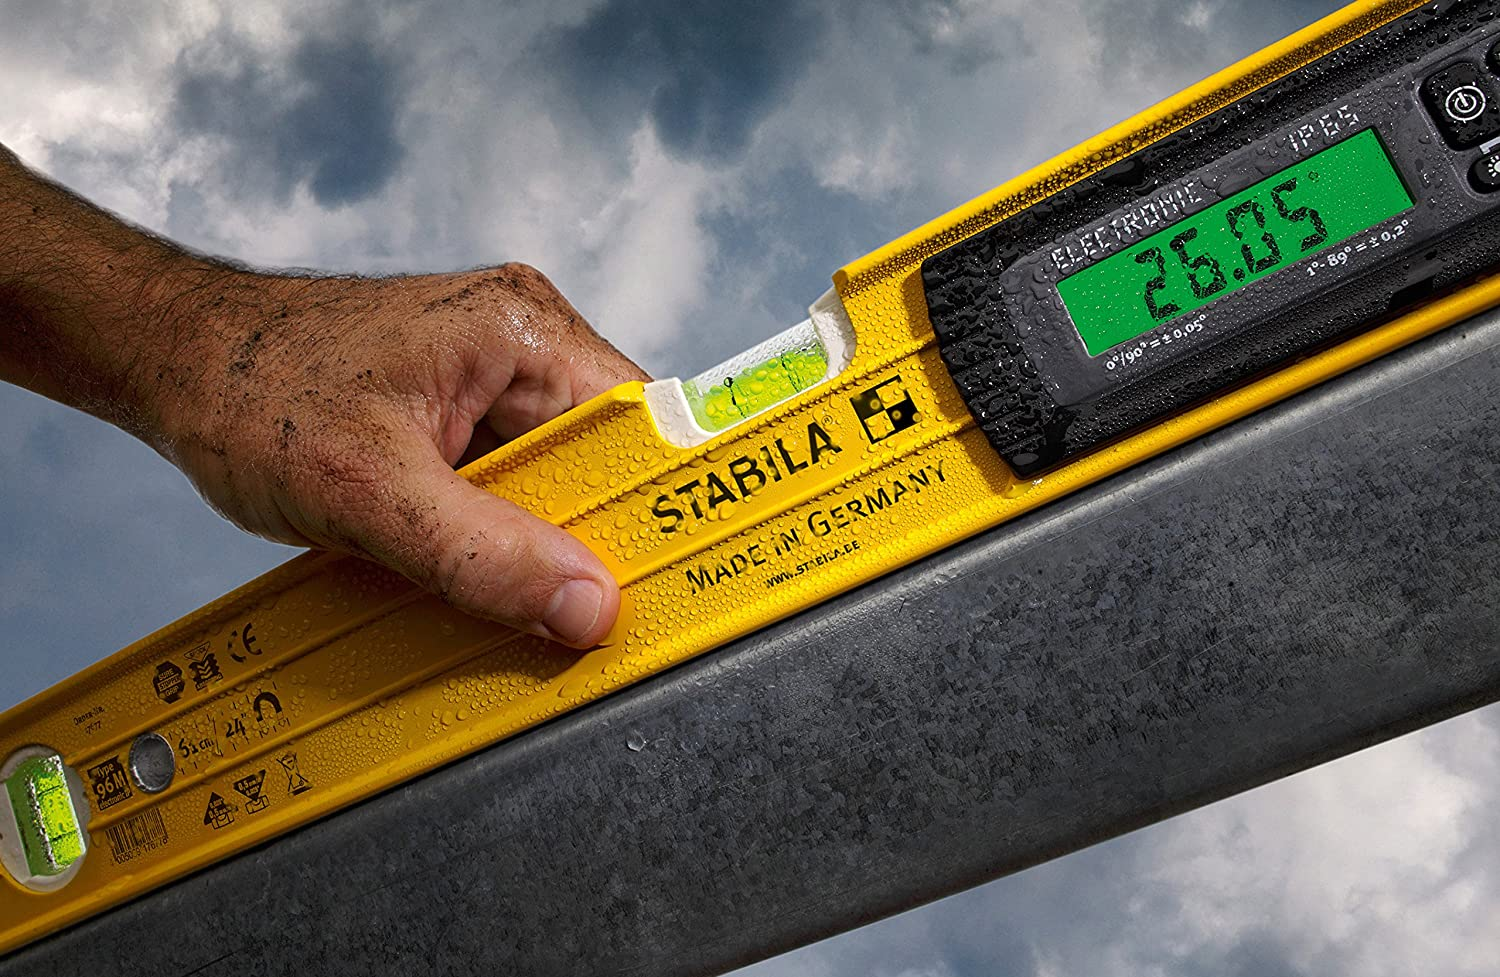 Stabila 36520 Type 96M-2 Magnetic TECH 24 Level with Case Bon Tool